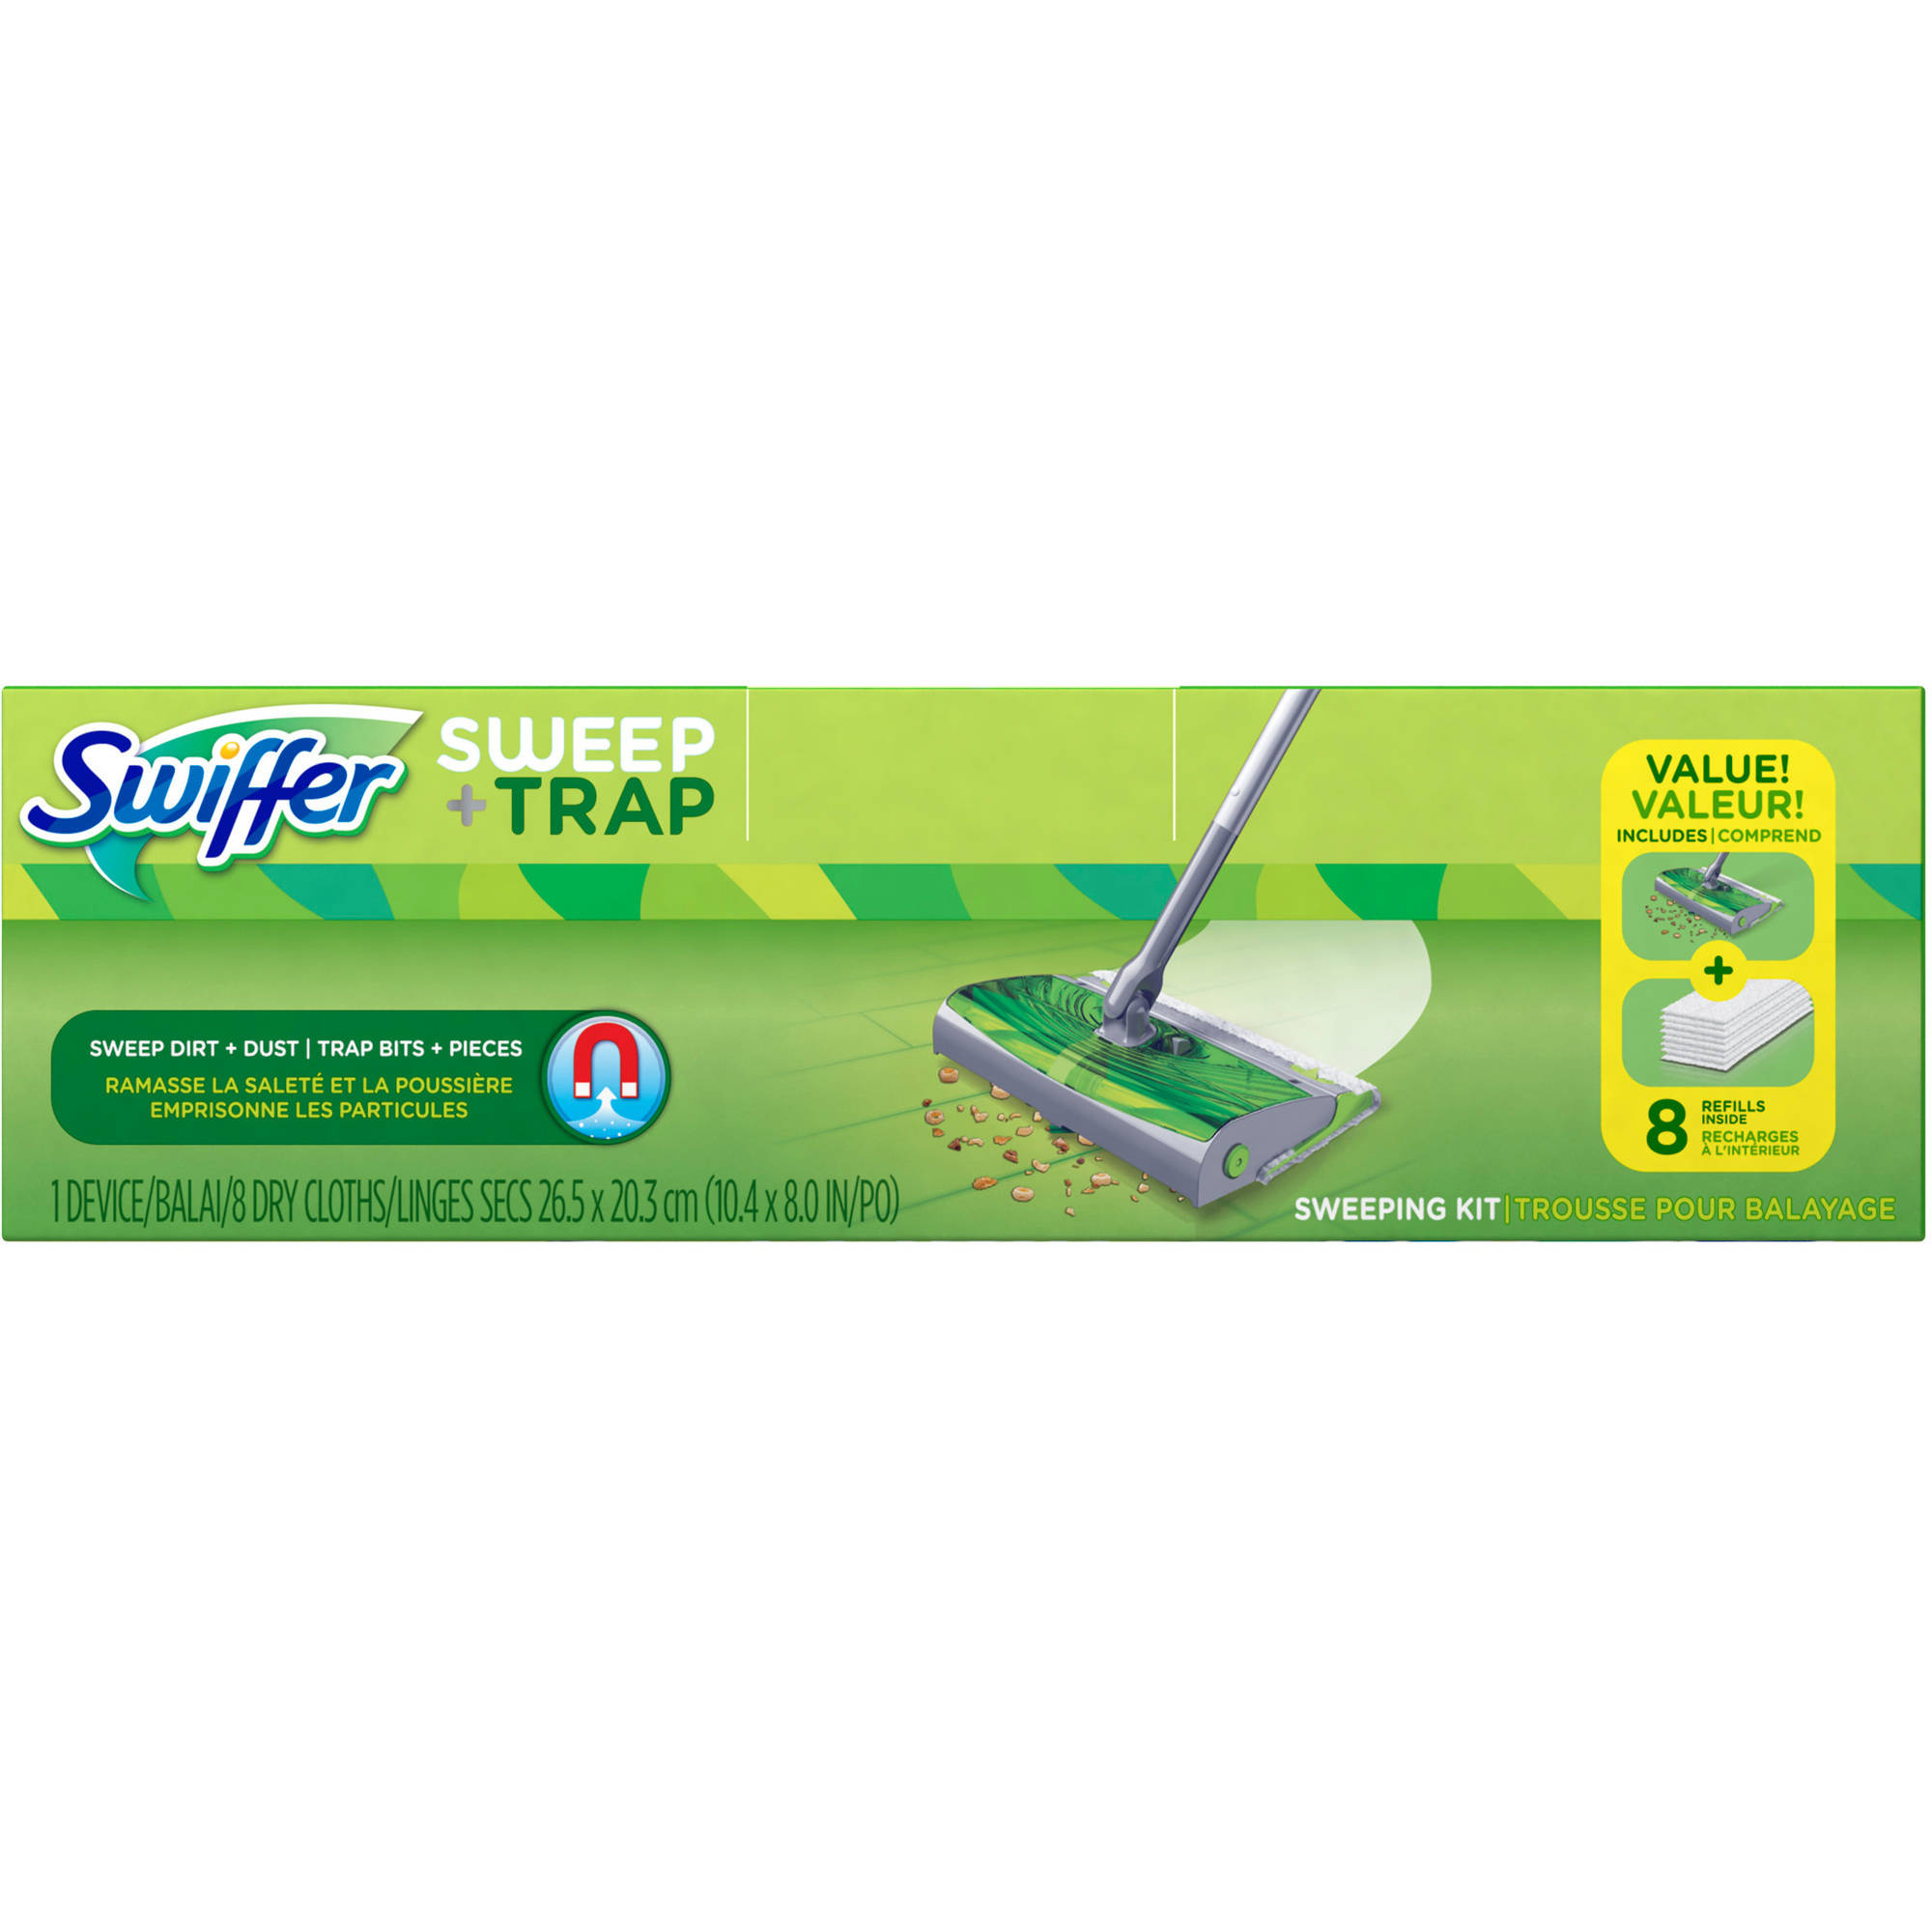 Swiffer Sweep+Trap Floor Cleaner Starter Kit, 9 pc